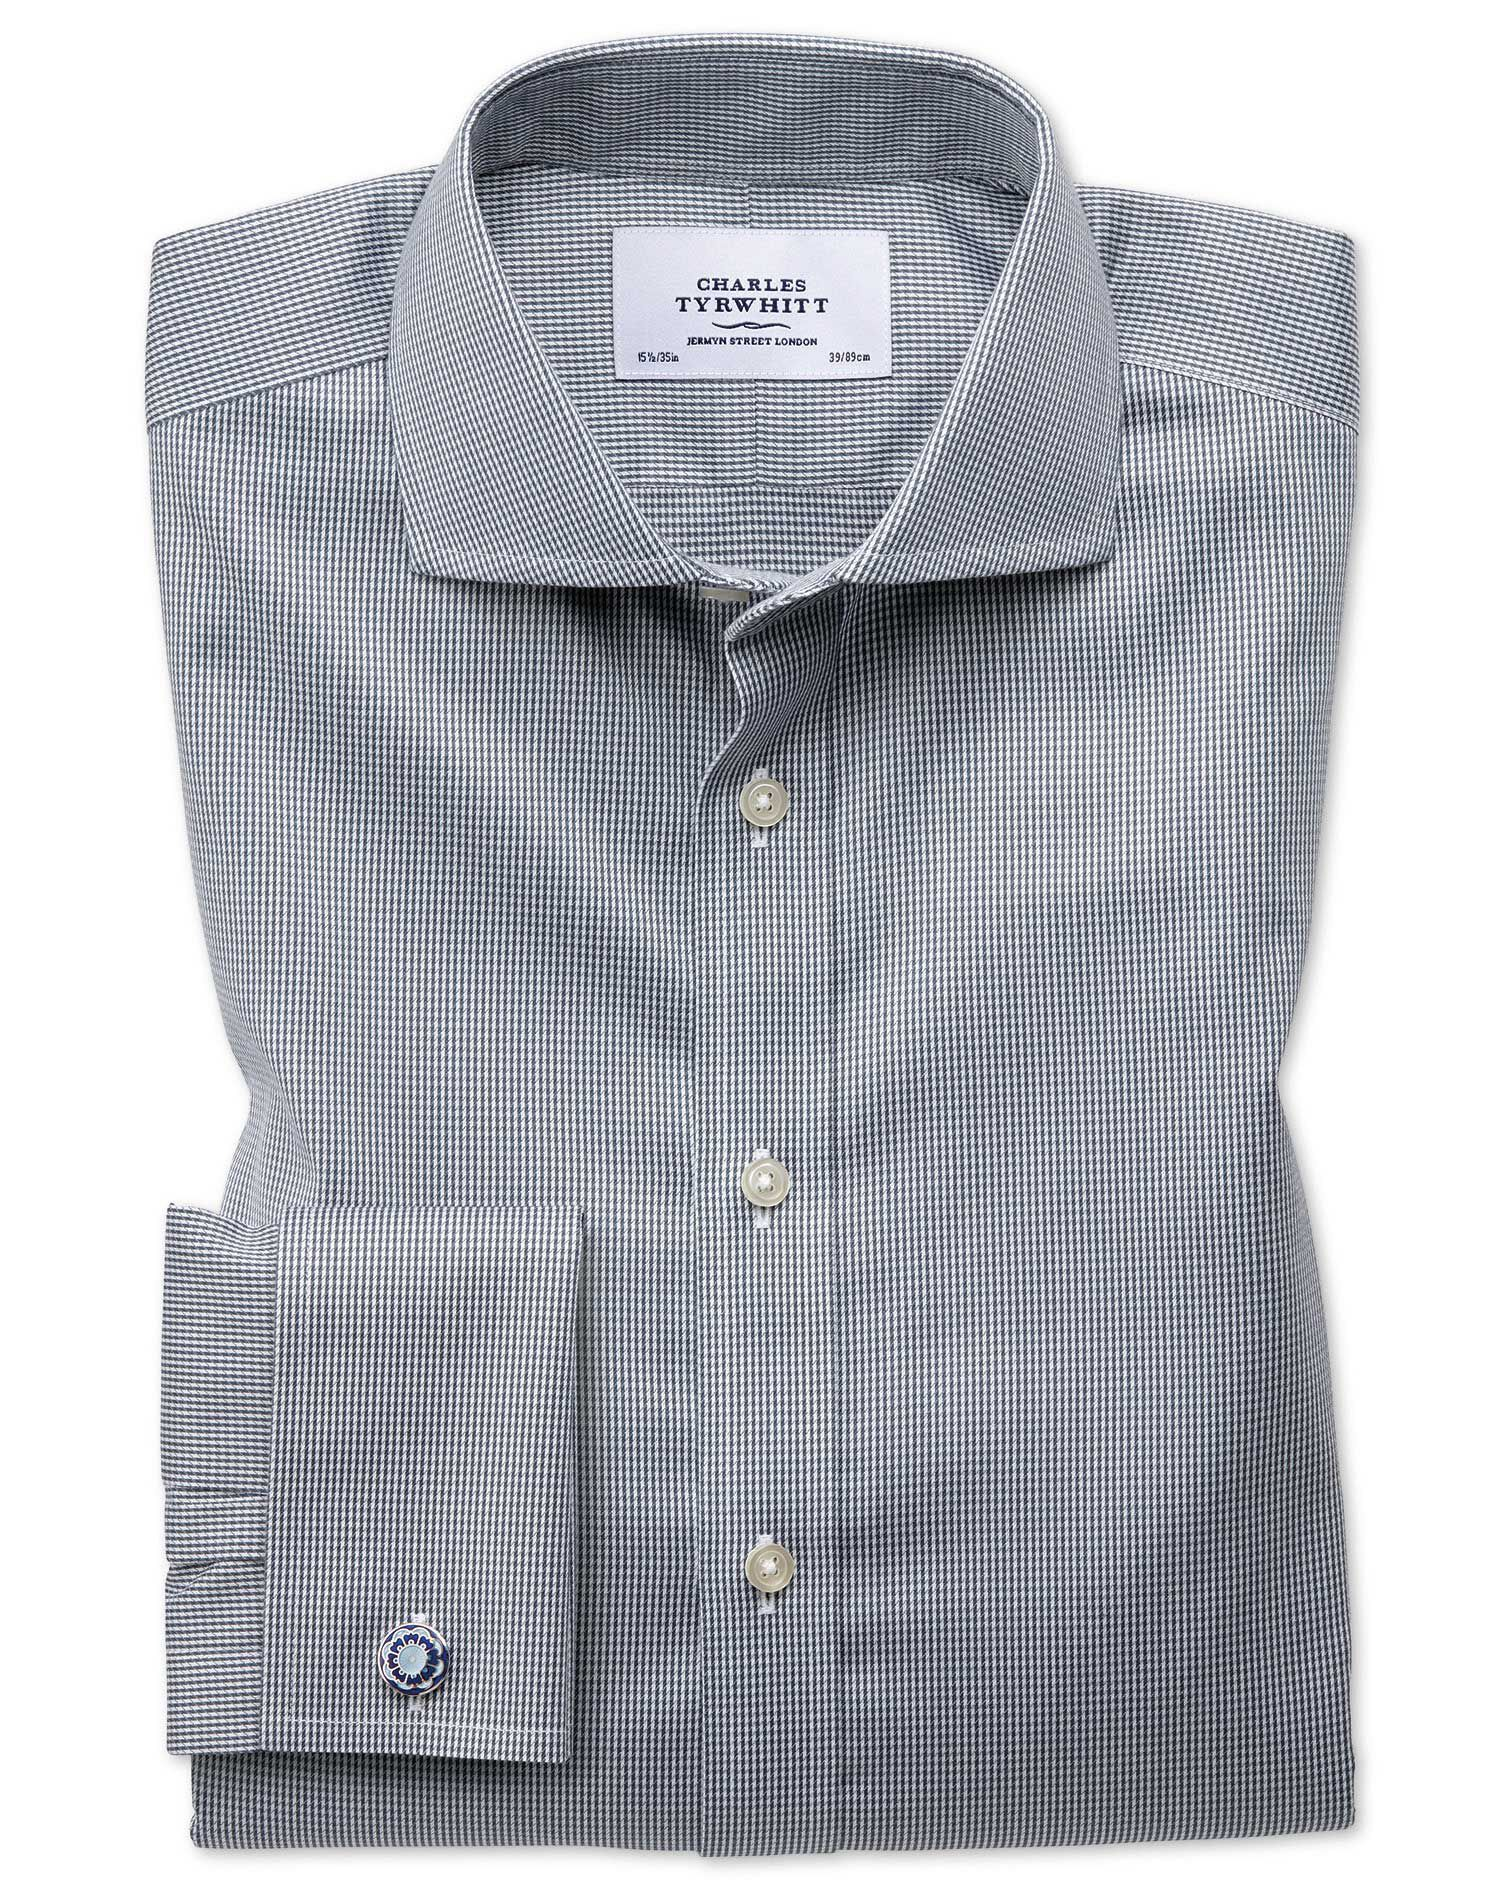 Slim Fit Cutaway Non-Iron Puppytooth Dark Grey Cotton Formal Shirt Double Cuff Size 15.5/35 by Charl